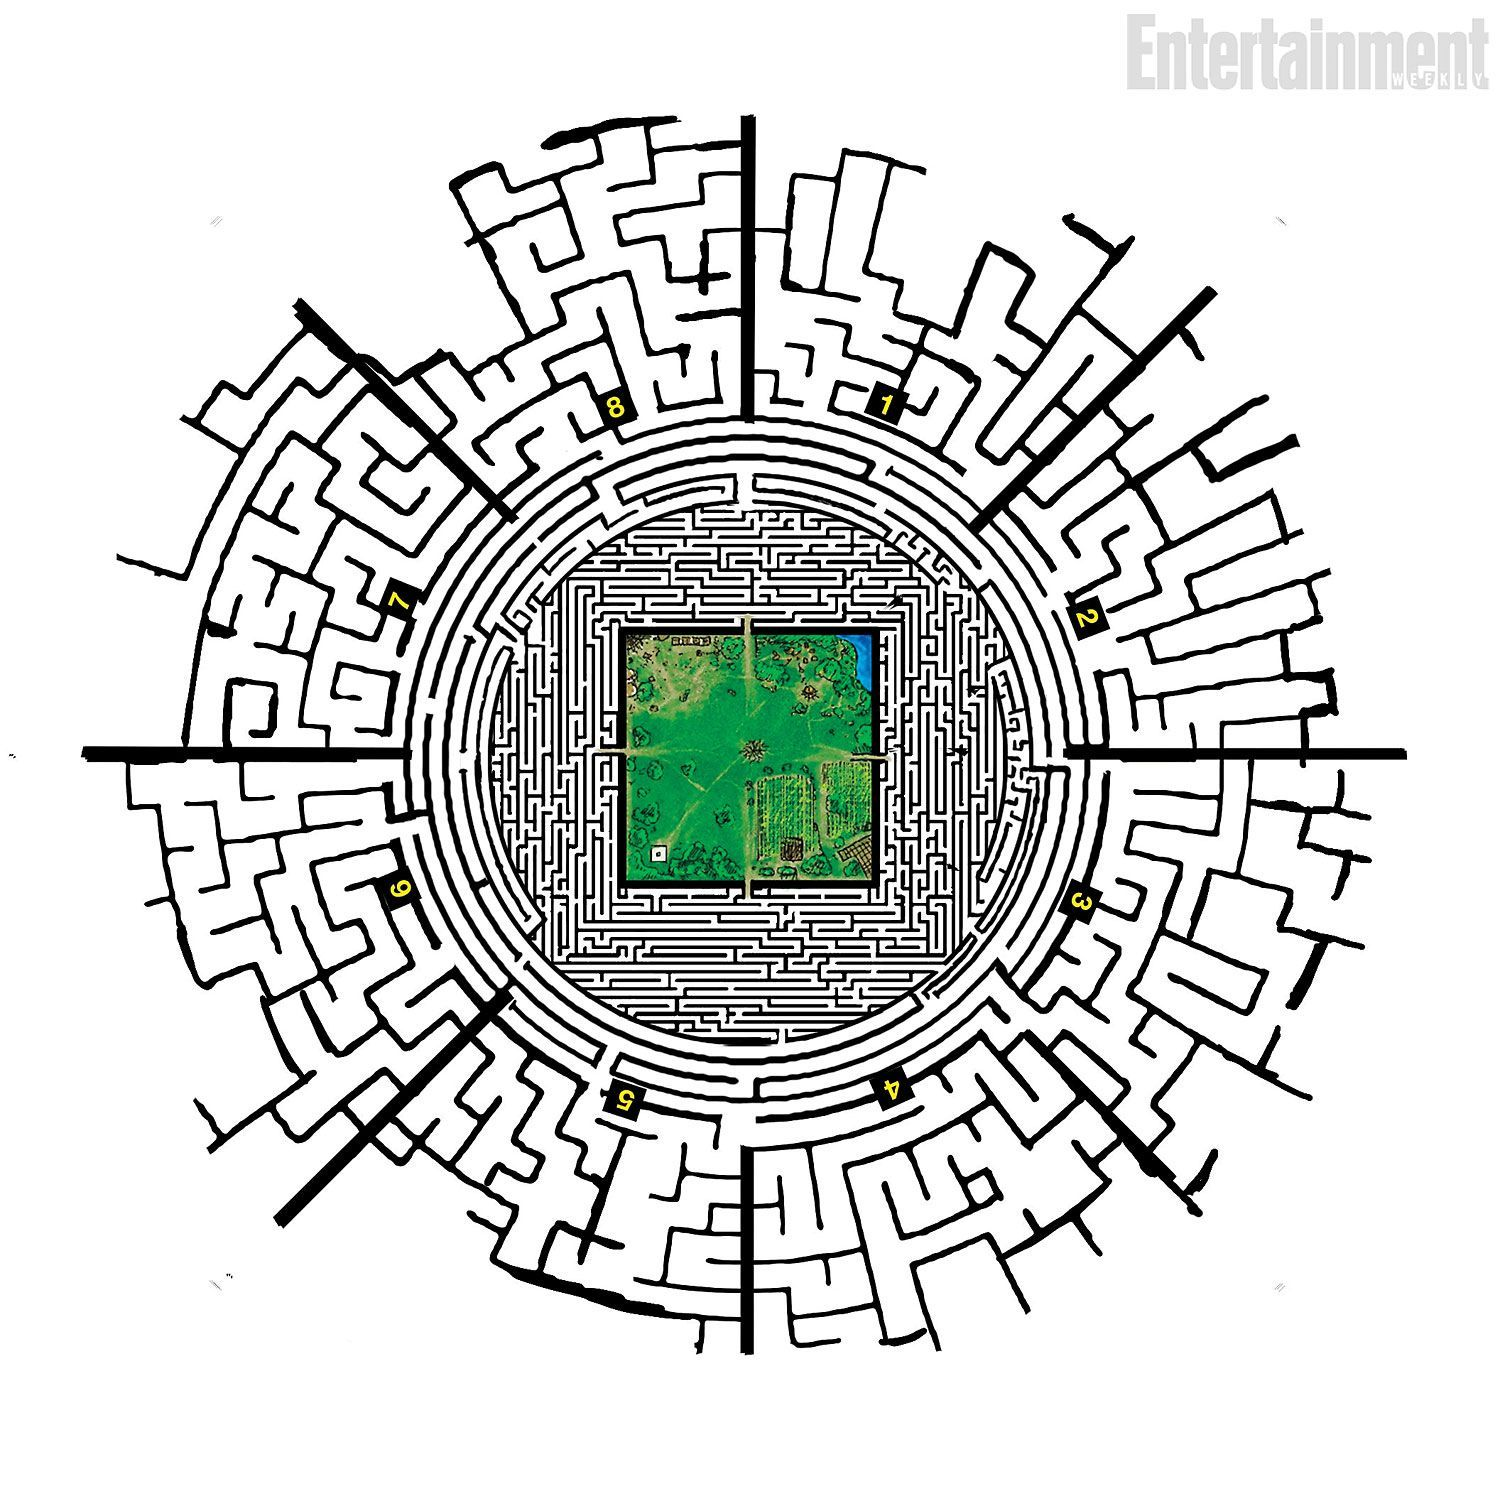 Maze Runner Maze Map Exclusive: How Wes Ball designed the perfect maze for 'The Maze